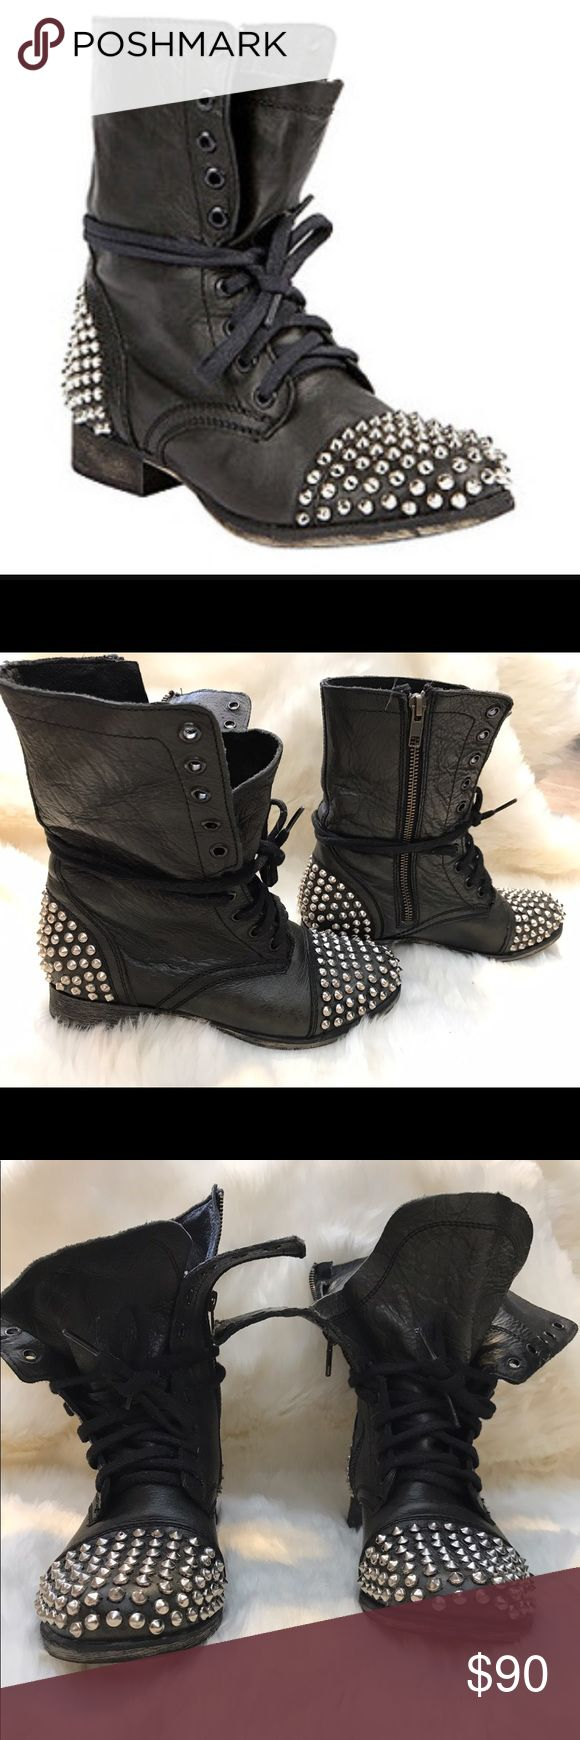 """Steve Madden """"Tarnney"""" studded combat boot Steve Madden """"Tarnney"""" studded combat boot. These have been worn 3 times, they are in excellent condition with no signs of wear. They can be worn slouchy or laced all the way up. All studs are intact. Originally $149 bought from Steve Madden stores. These are a size 7. Super cute boot! Steve Madden Shoes Combat & Moto Boots"""